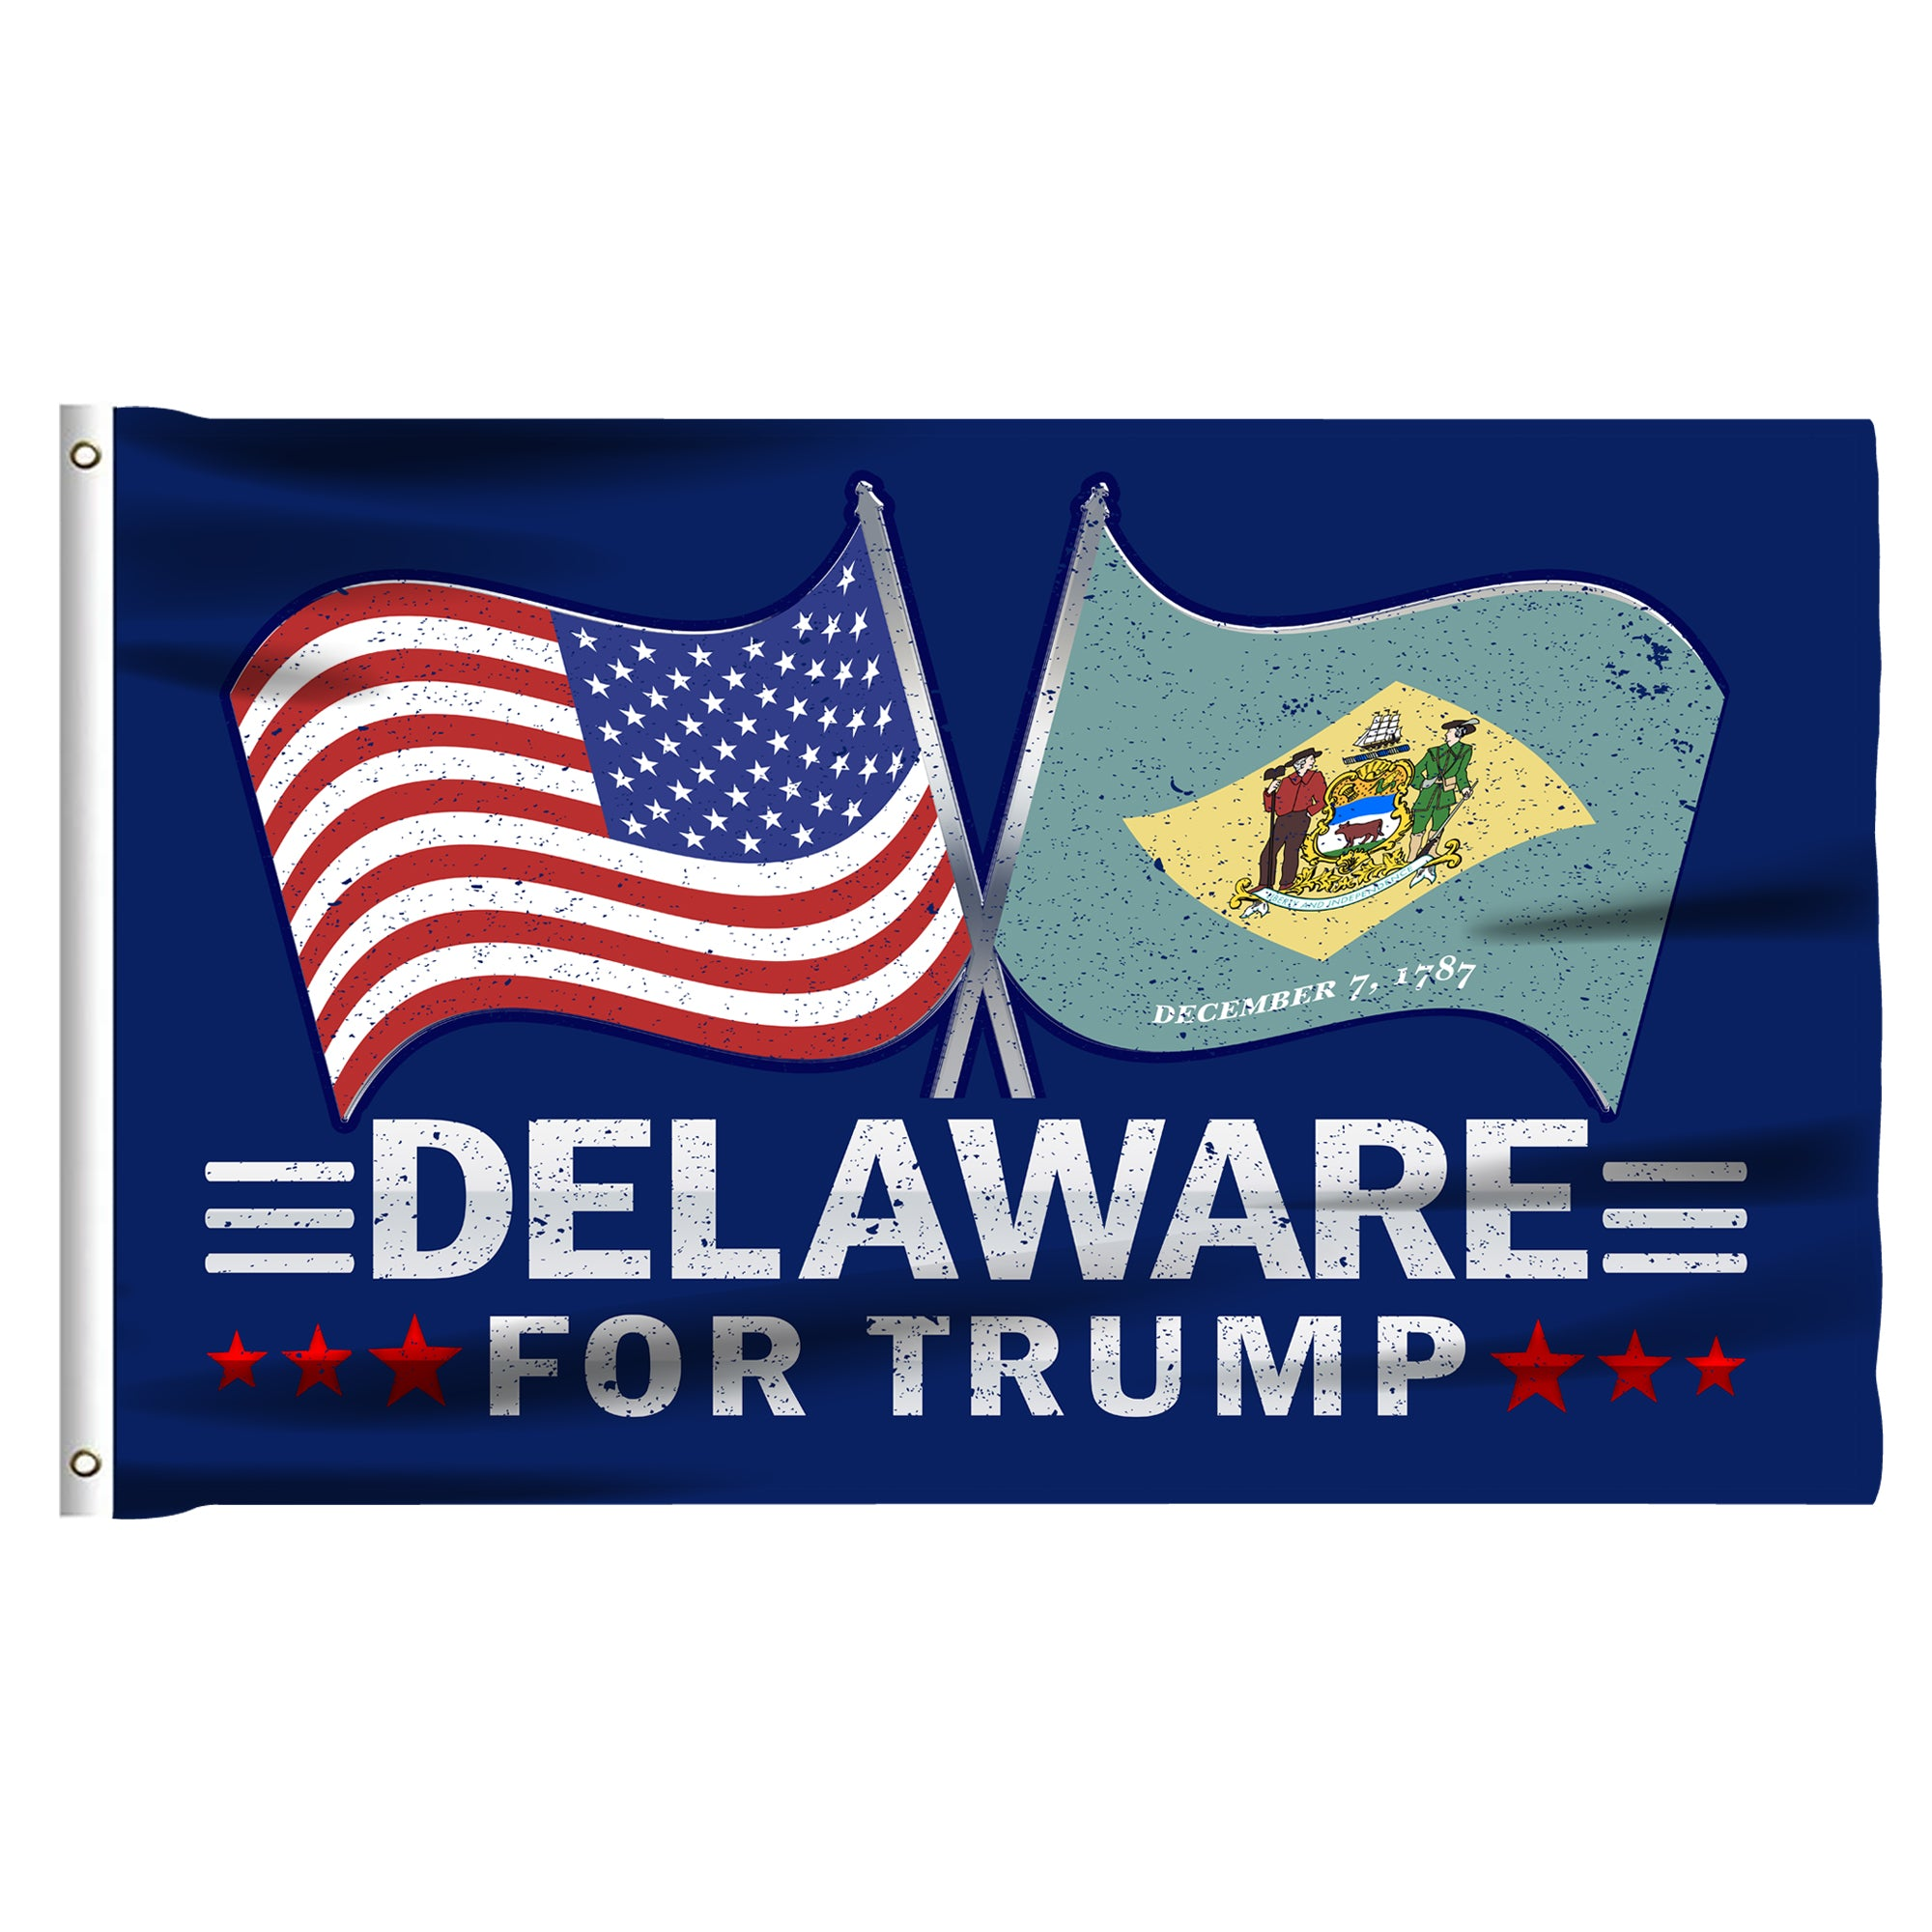 Delaware For Trump 3 x 5 Flag - Limited Edition Dual Flags